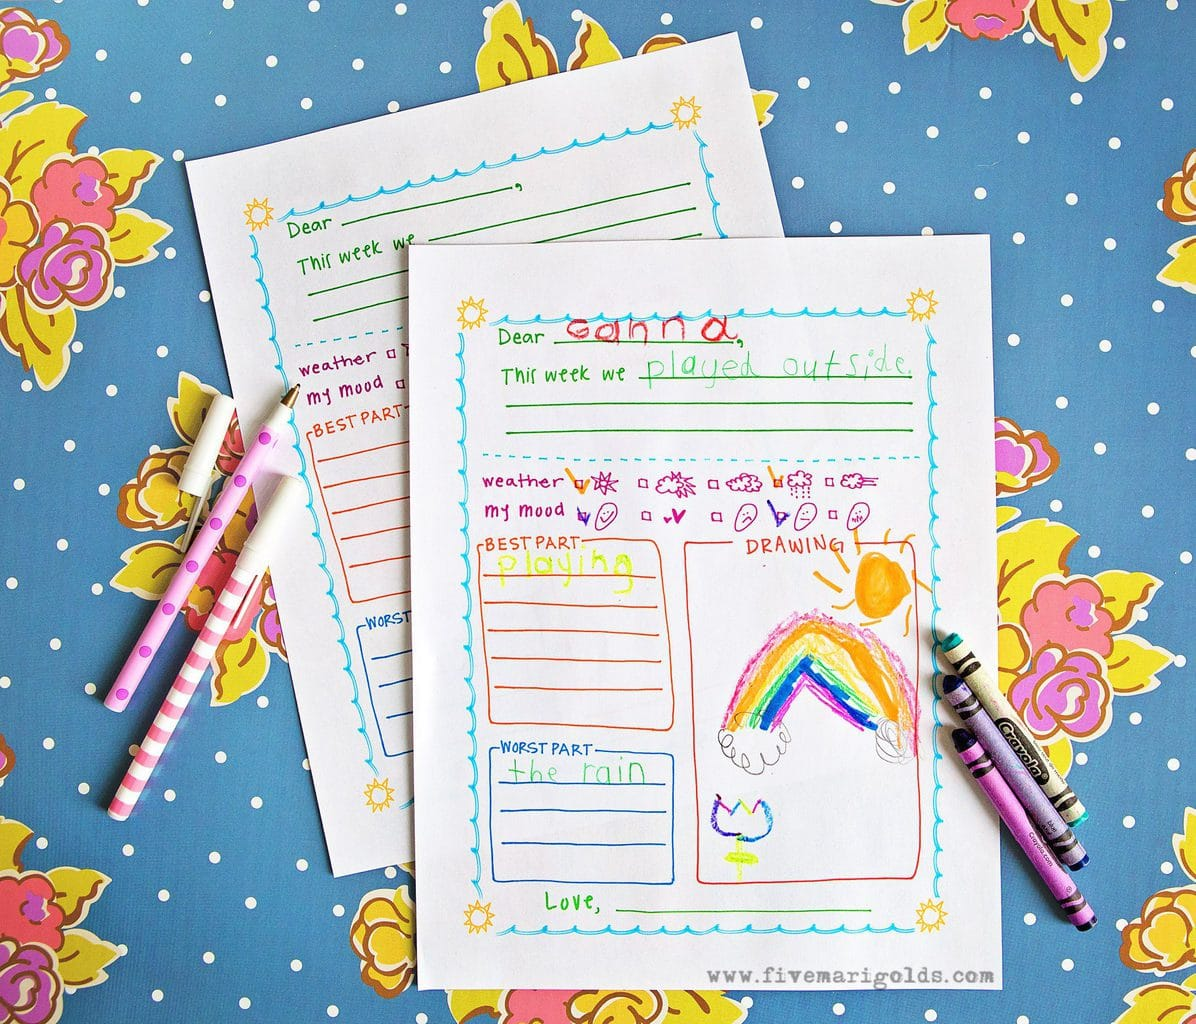 This free summer letter template for kids is great for pen pals, summer camp, and keeping in touch with pals and relatives over summer vacation!